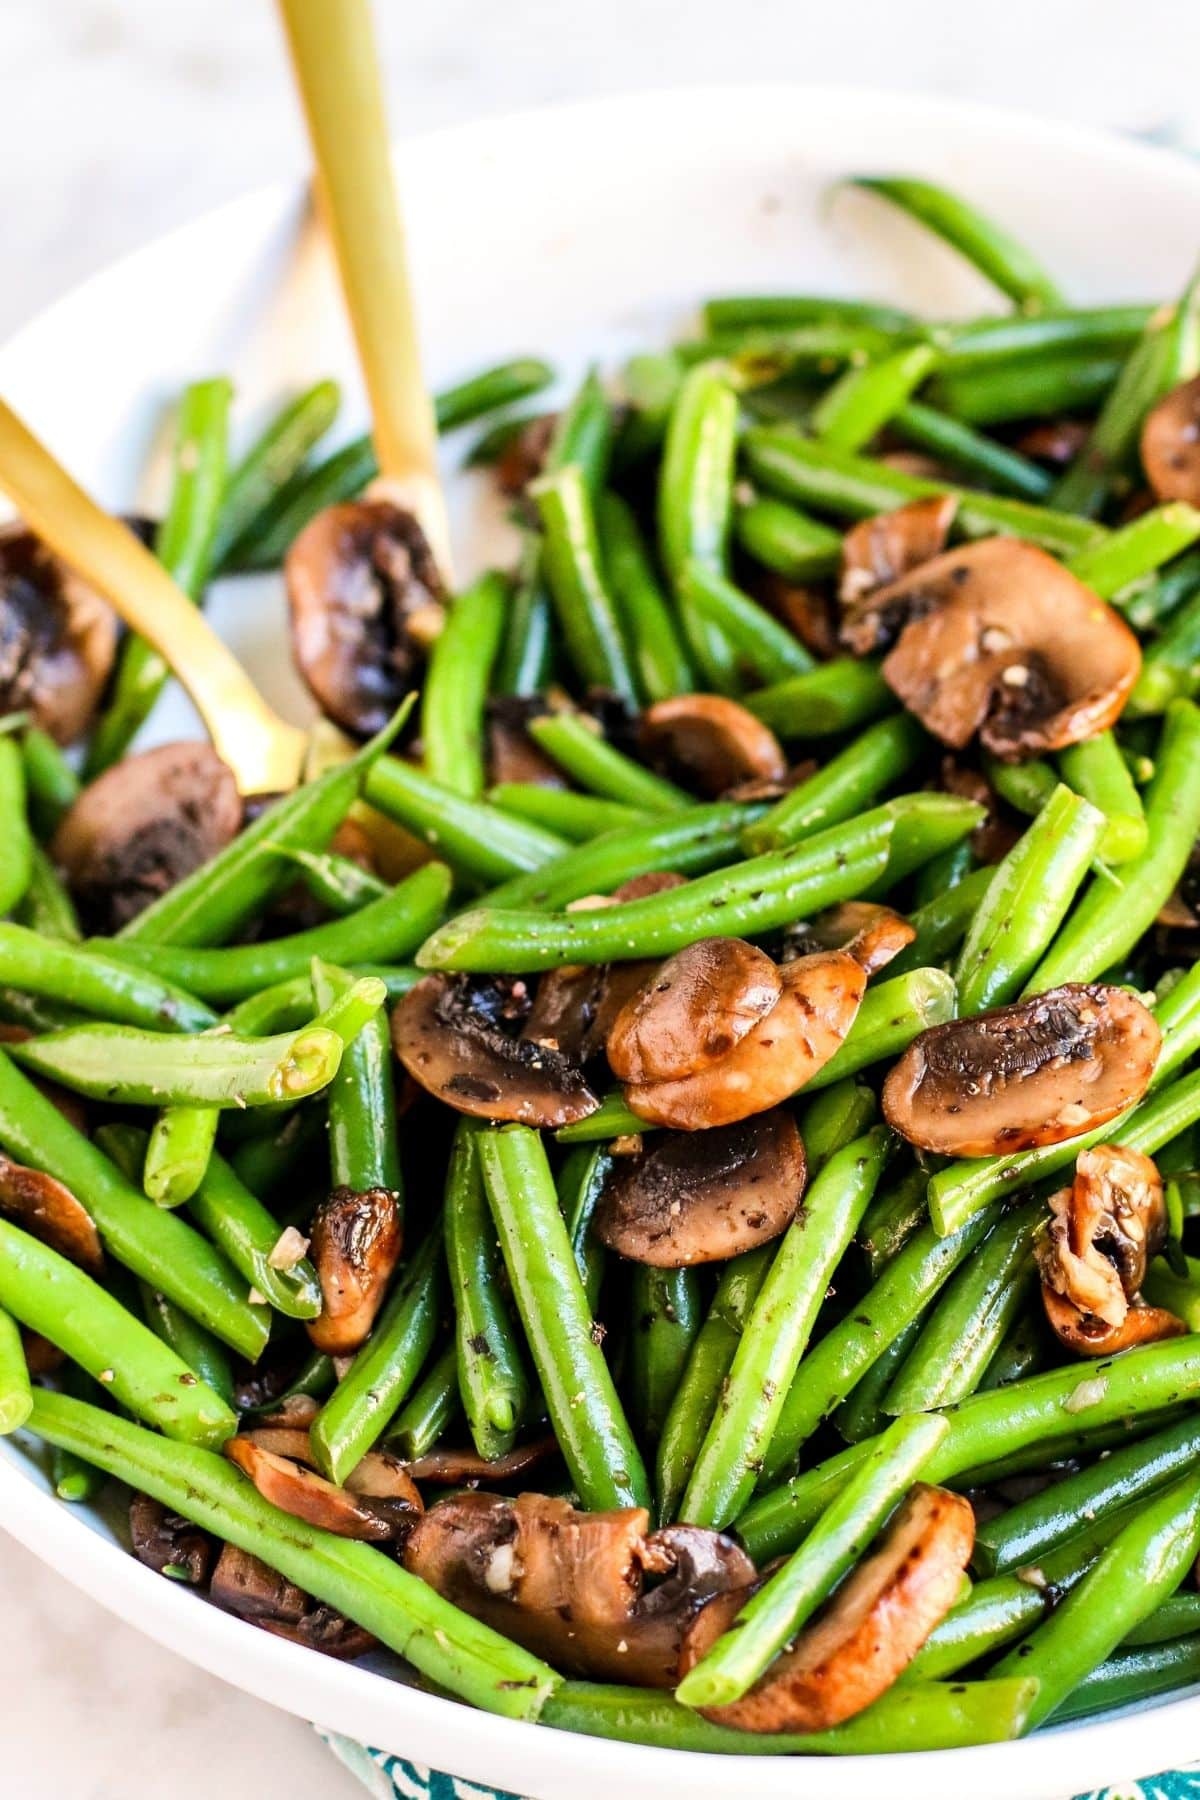 Bowl of green beans and mushrooms with gold serving utensils